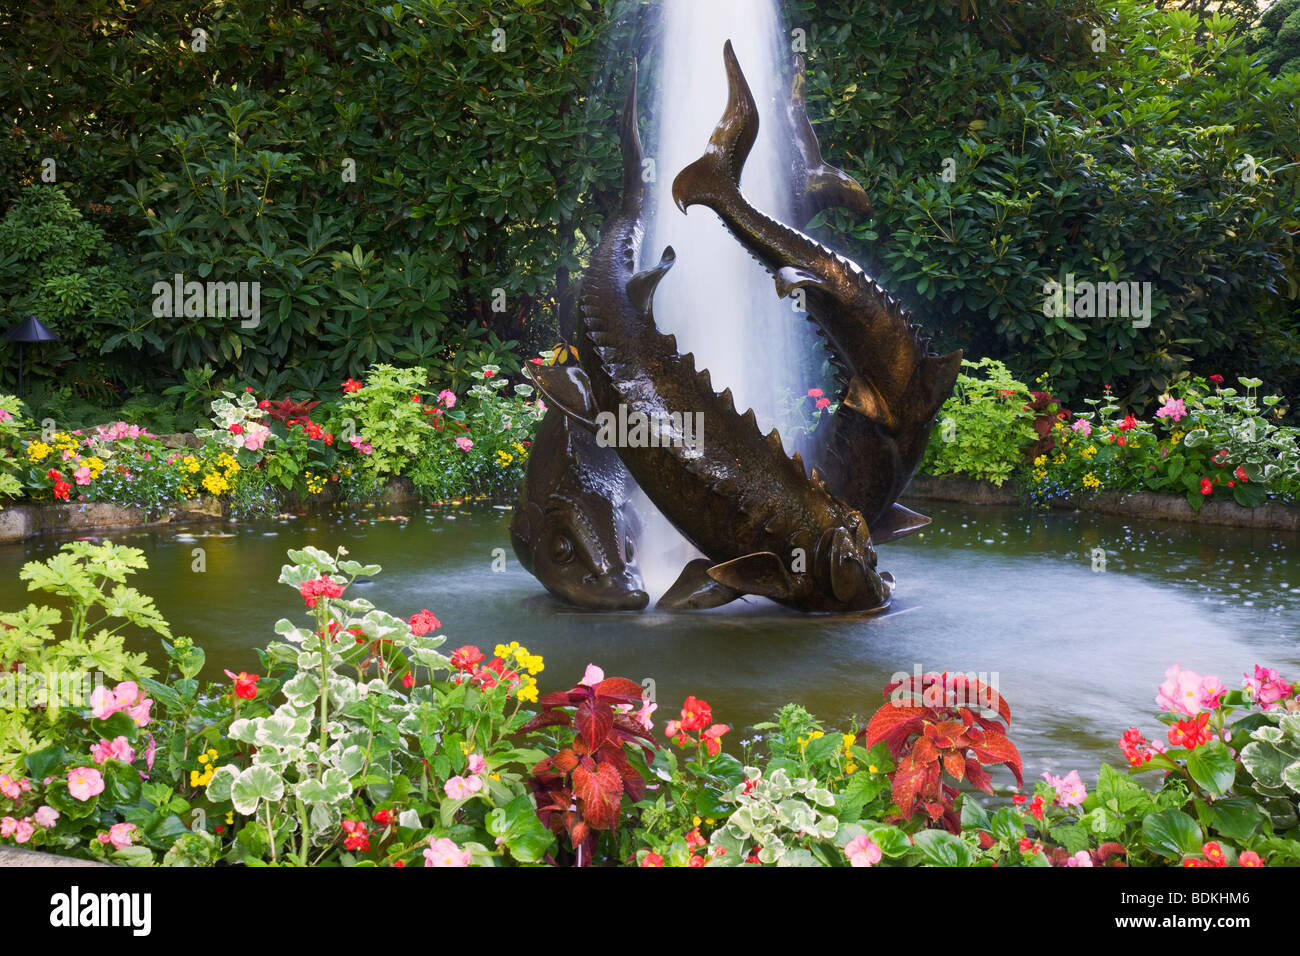 Sturgeon fountain the butchart gardens victoria vancouver island sturgeon fountain the butchart gardens victoria vancouver island british columbia canada thecheapjerseys Image collections